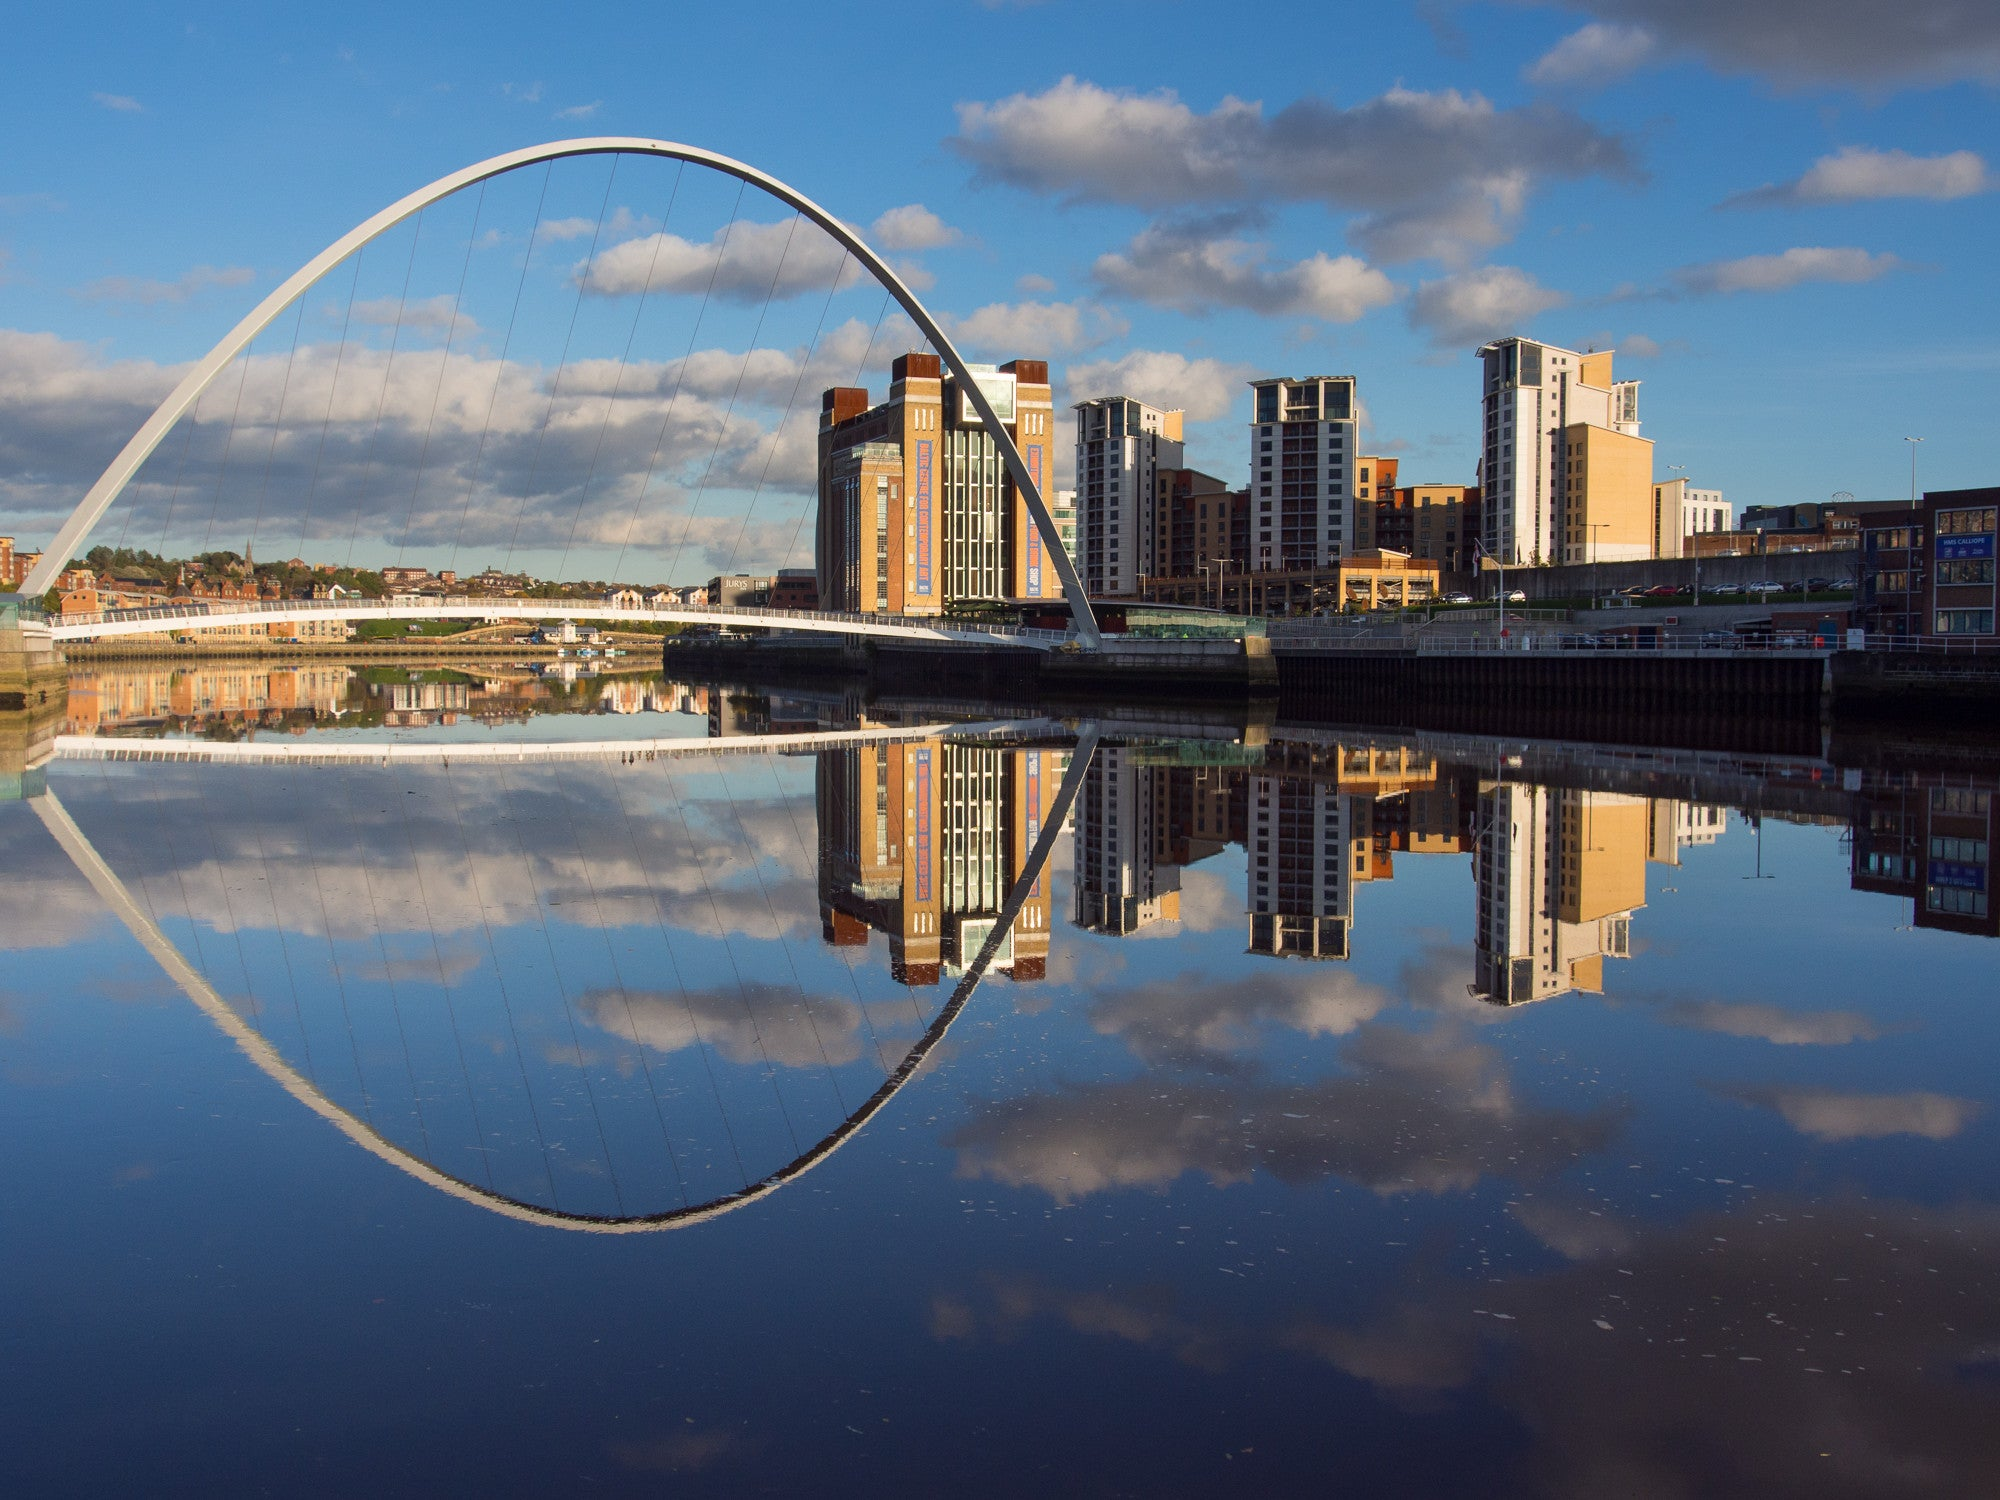 Tyne wear landscape photography tuition